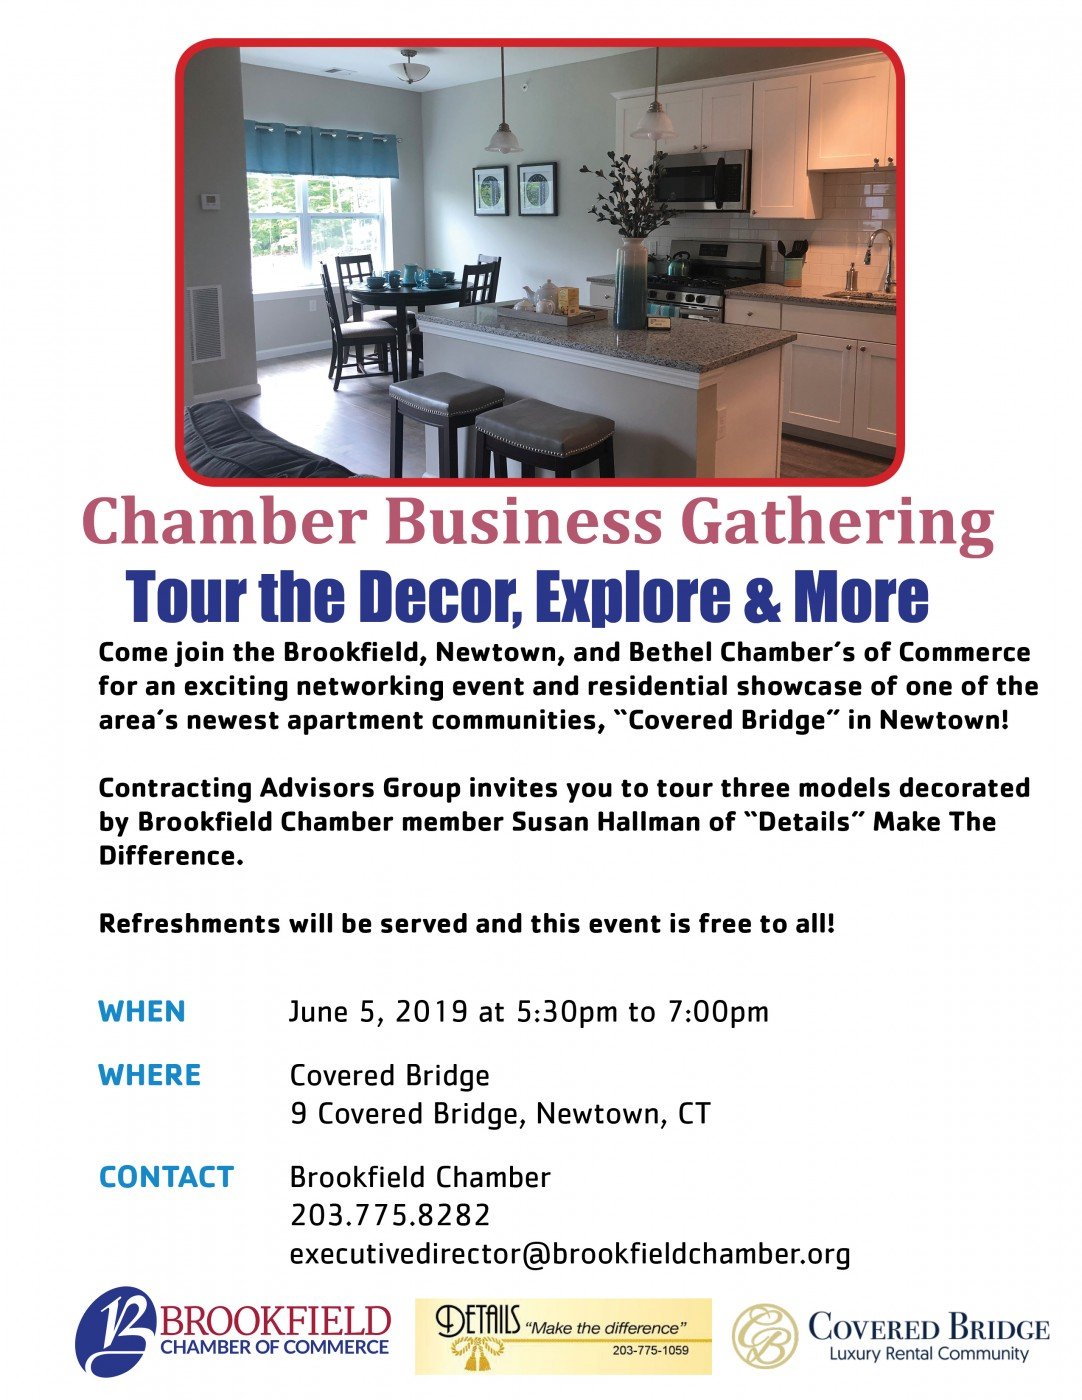 "Tour the Decor & More - Come join the the Chamber of Commerce for an exciting networking event and residential showcase of one of the area's newest apartment communities, ""Covered Bridge"" in Newtown! Contracting Advisors Group invites you to tour three models decorated by Brookfield Chamber member Susan Hallman of ""Details"" Make The Difference. Refreshments will be served and this event is free to all!"